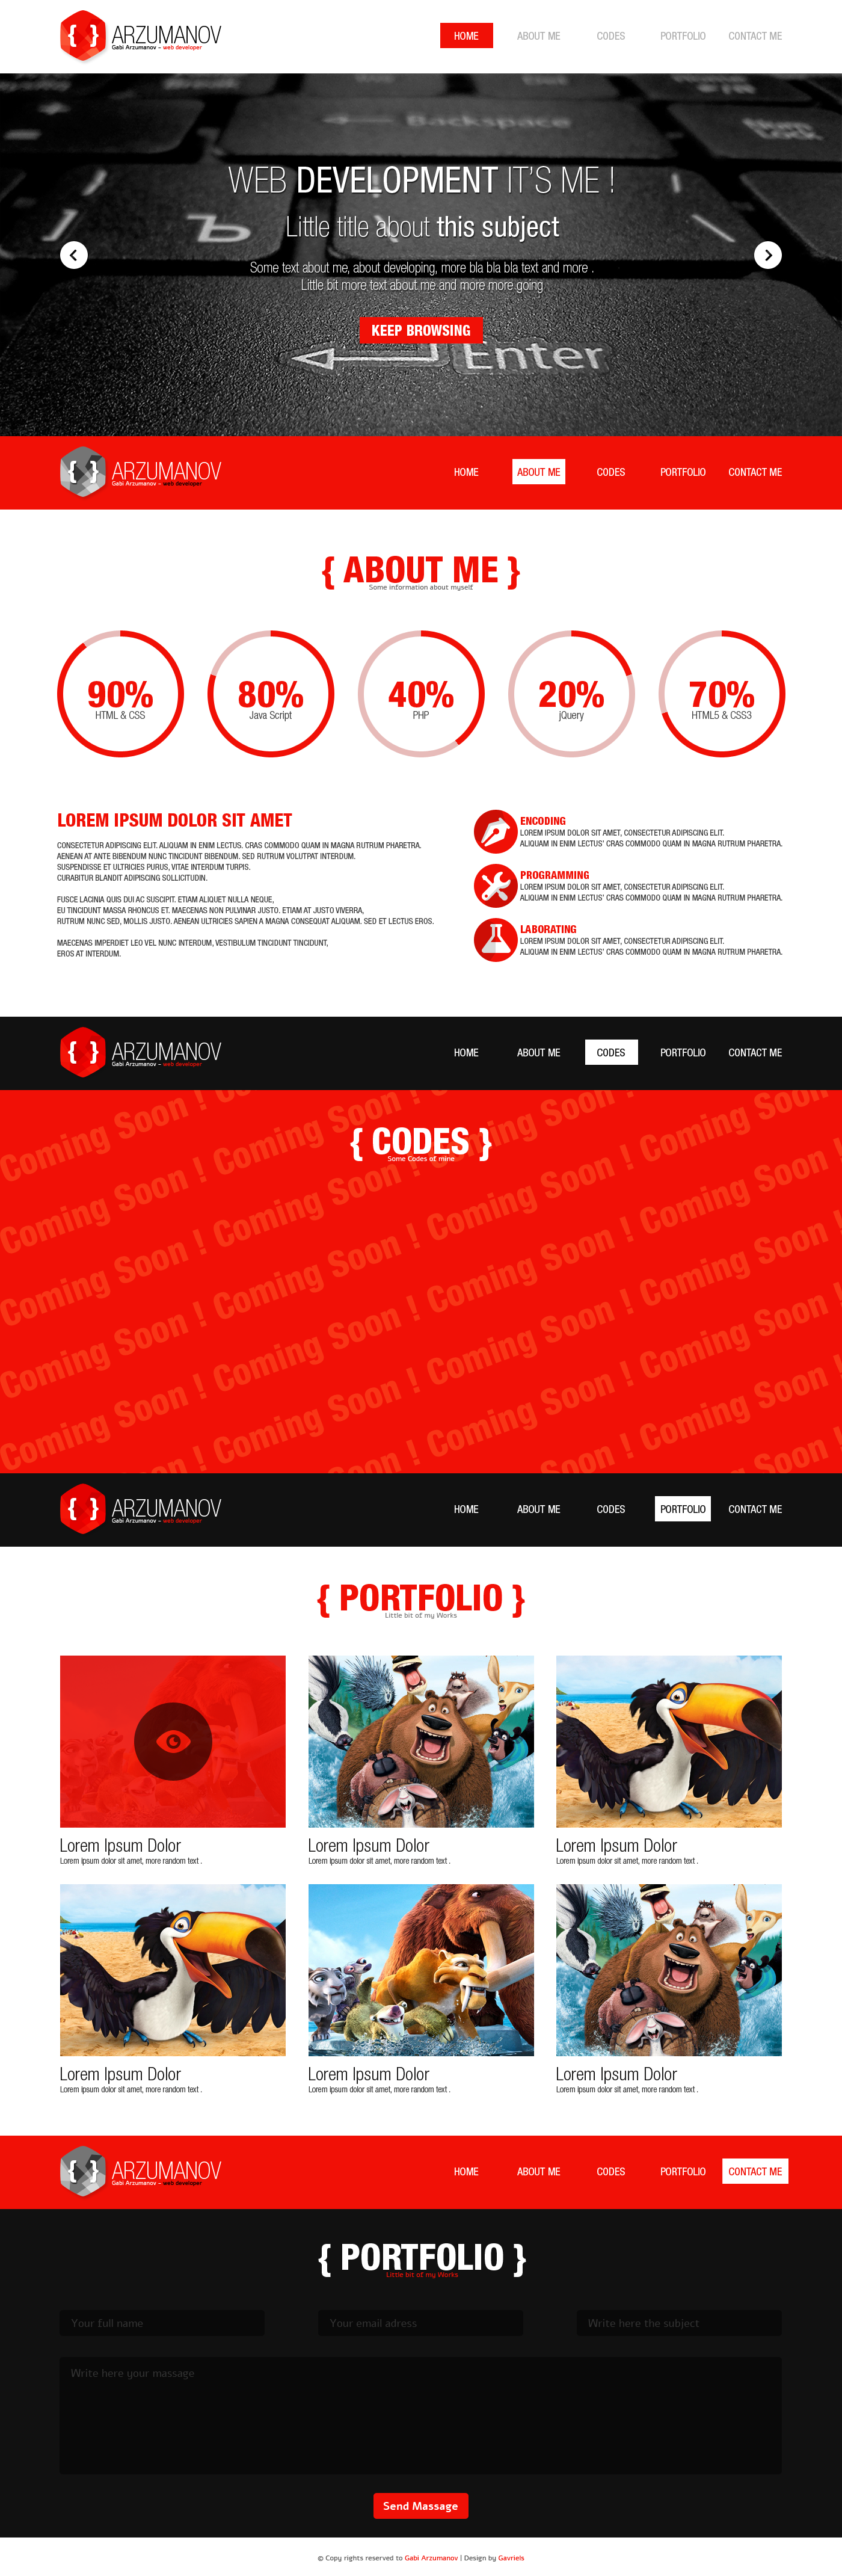 Arzumanov - One page website by GavrielStudio on DeviantArt